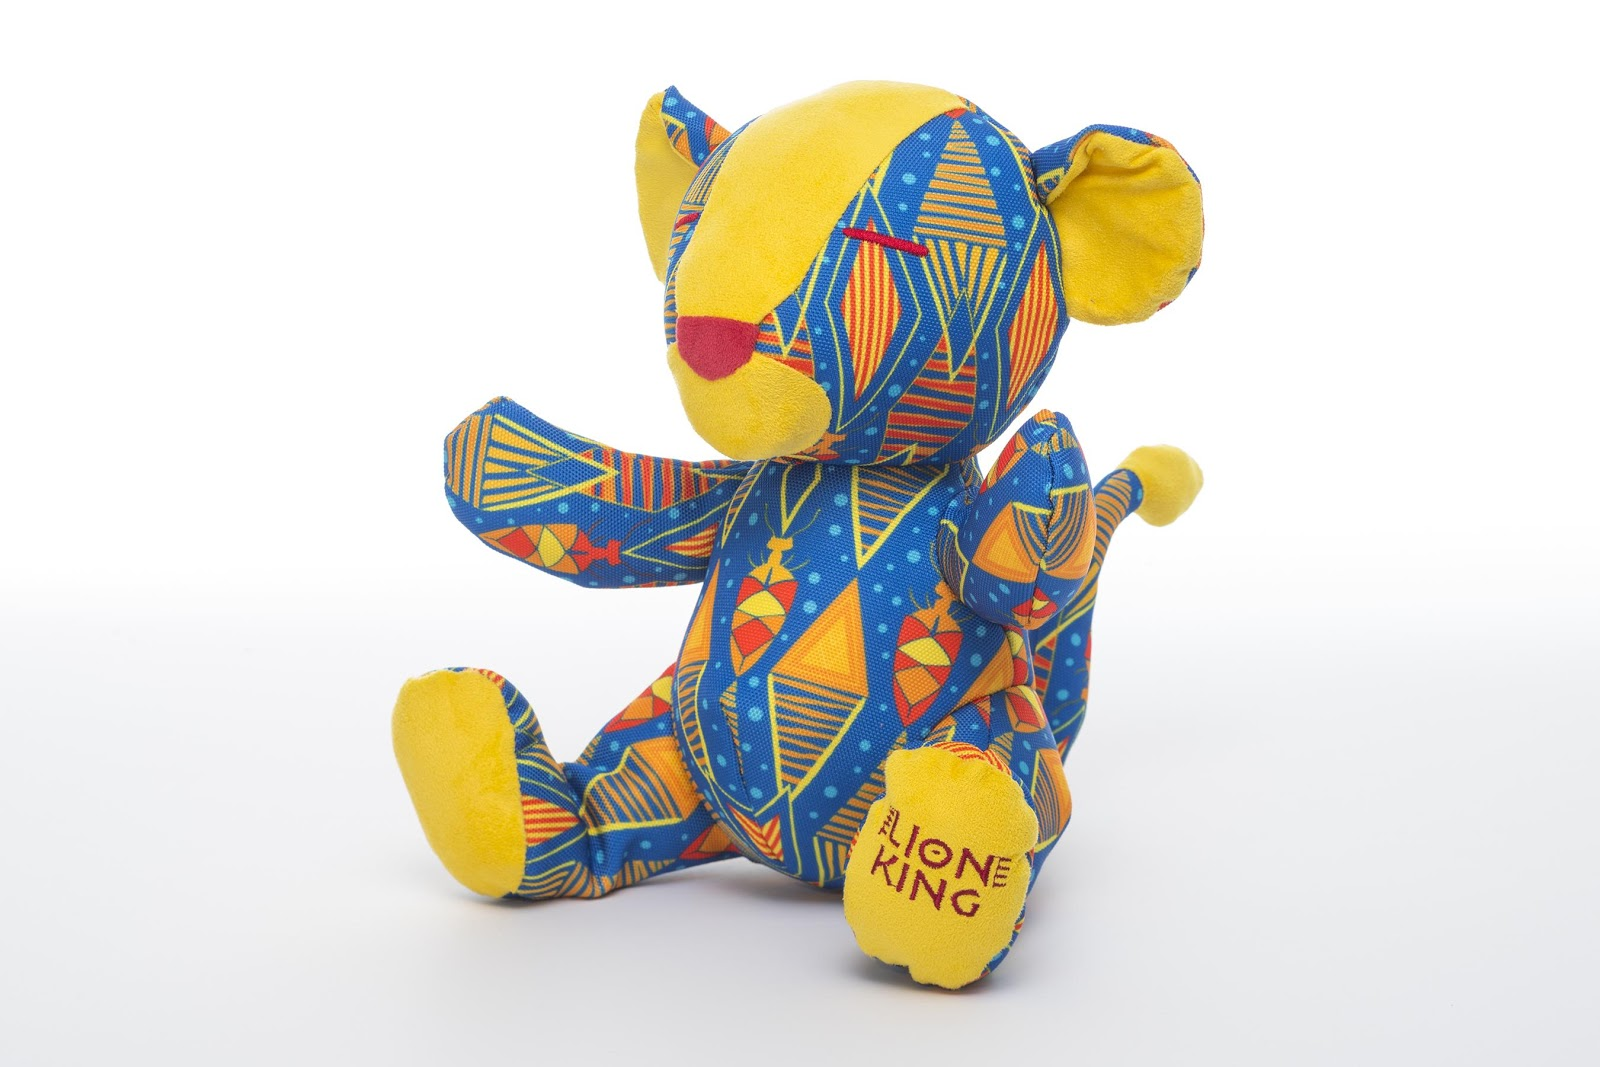 Special Edition Plush Supporting The Wildlife Conservation Network's (WCN) Lion Recovery Fund (LRF) Now Available At Disney's Animal Kingdom